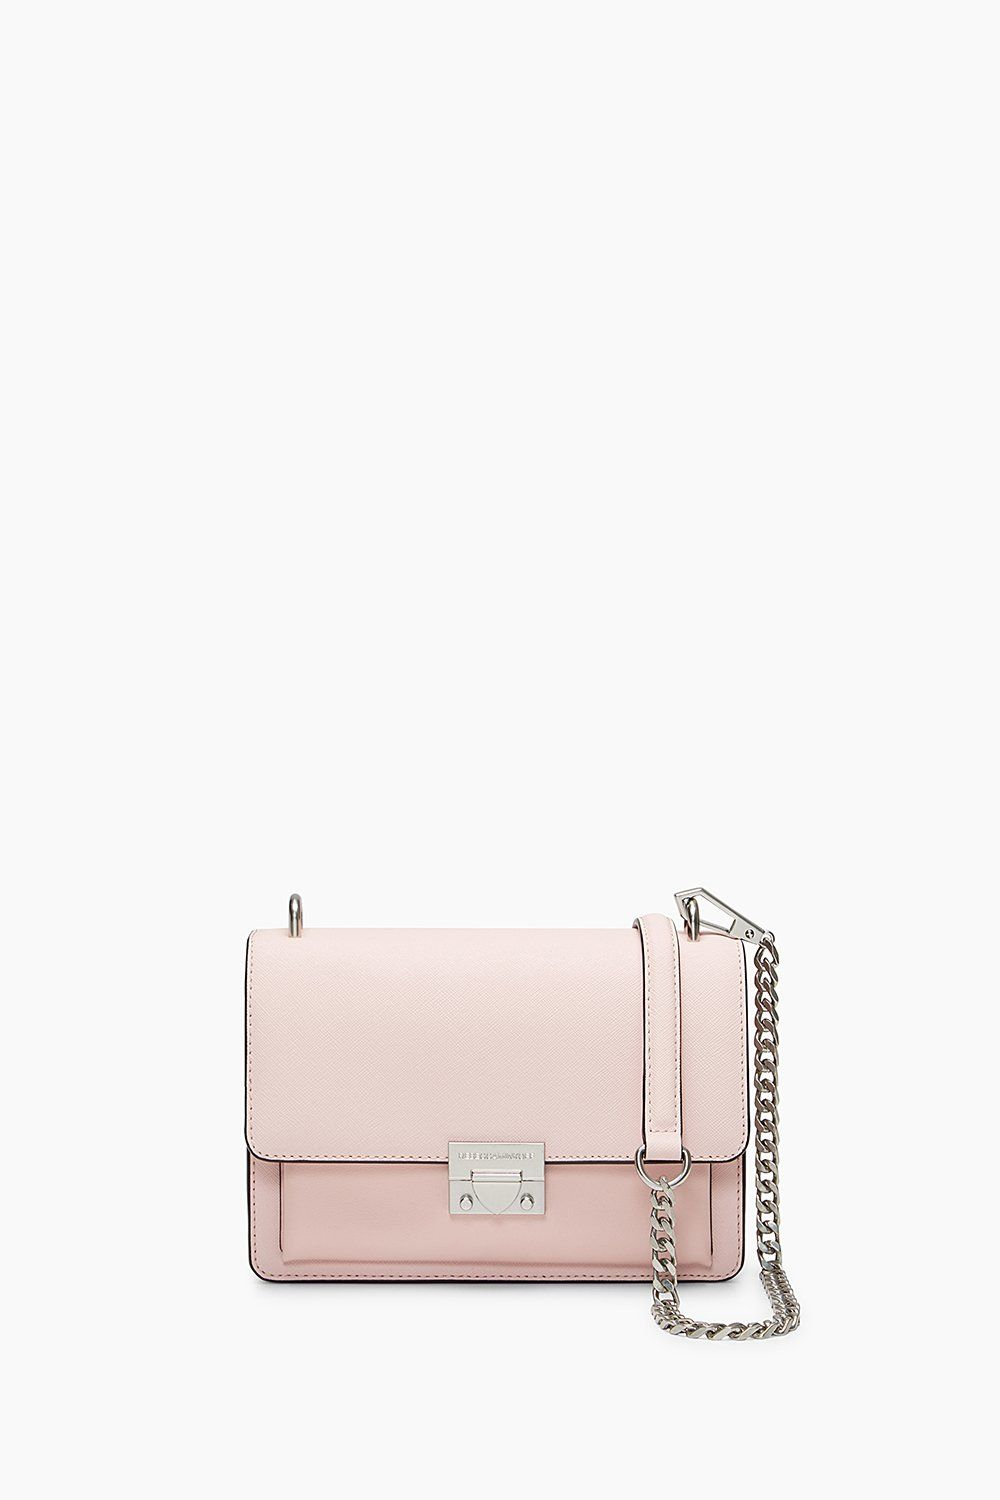 784816ec90c4 Christy Small Crossbody | Rebecca Minkoff, crossbody bag, crossbody bag for  travel, crossbody bag casual, crossbody bag leather, crossbody bag pink, ...